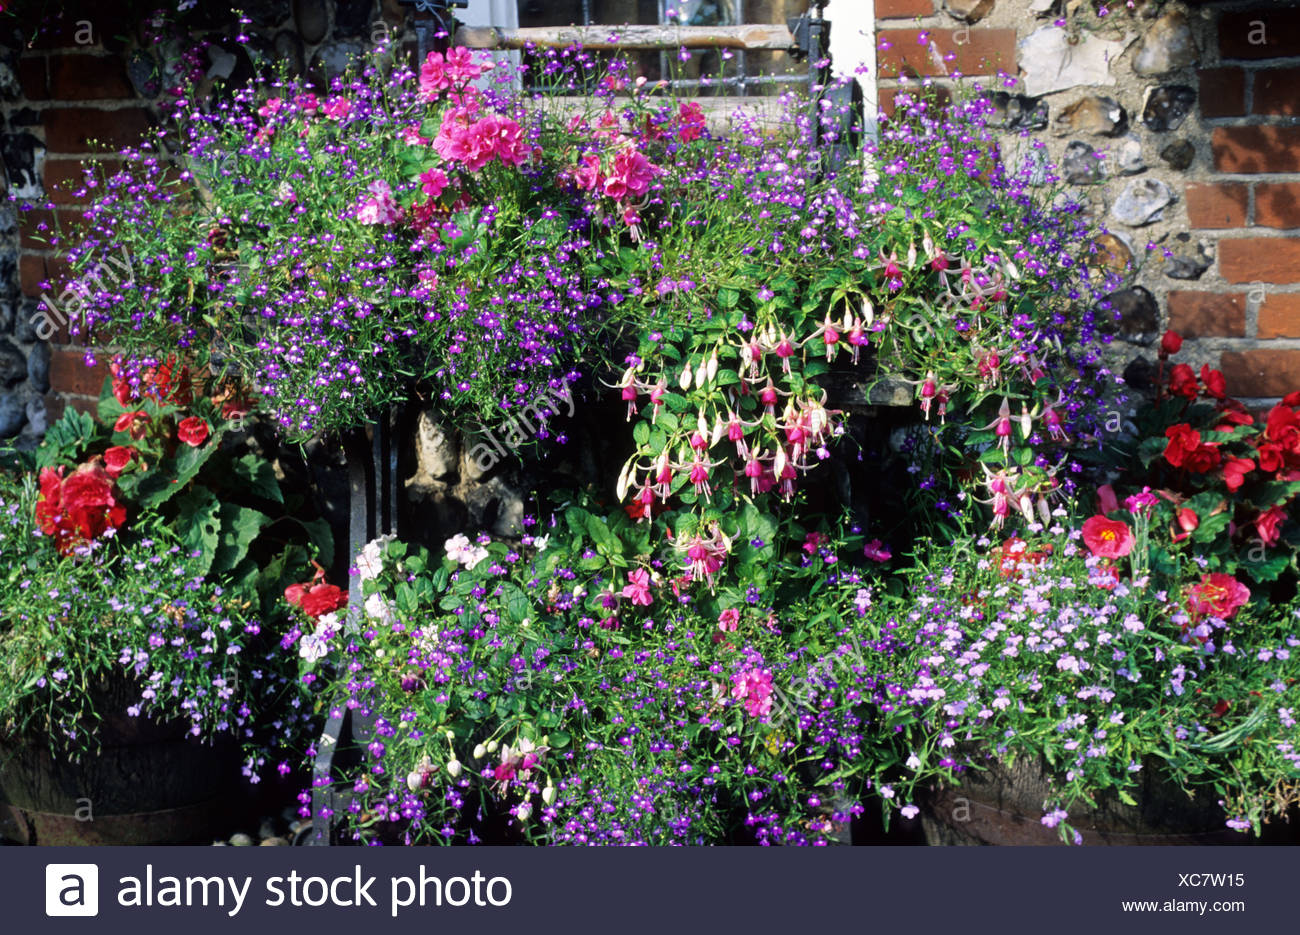 https www alamy com container plants fuchsia begonia on antique mangle stand pots planters patio garden image282915057 html